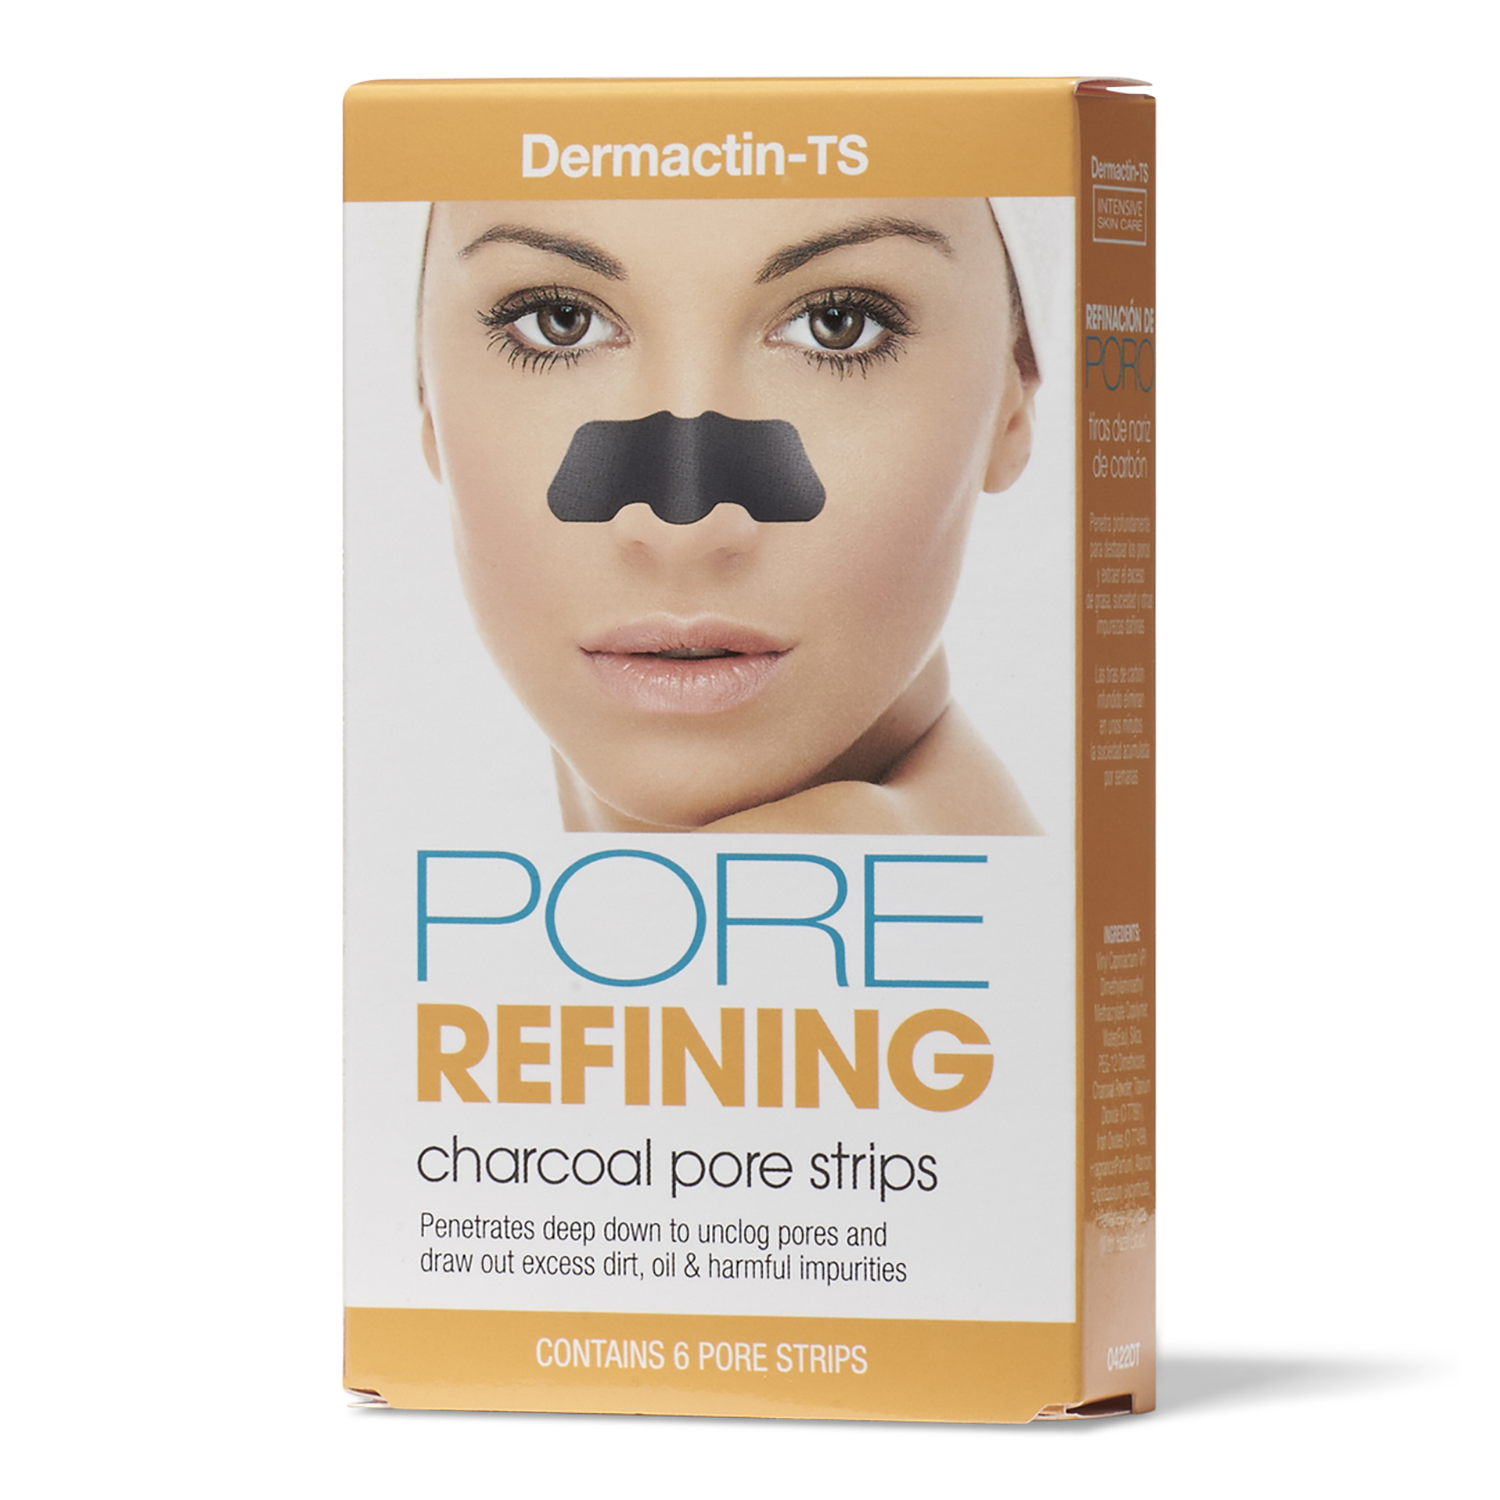 Pore Refining Charcoal Pore Strips